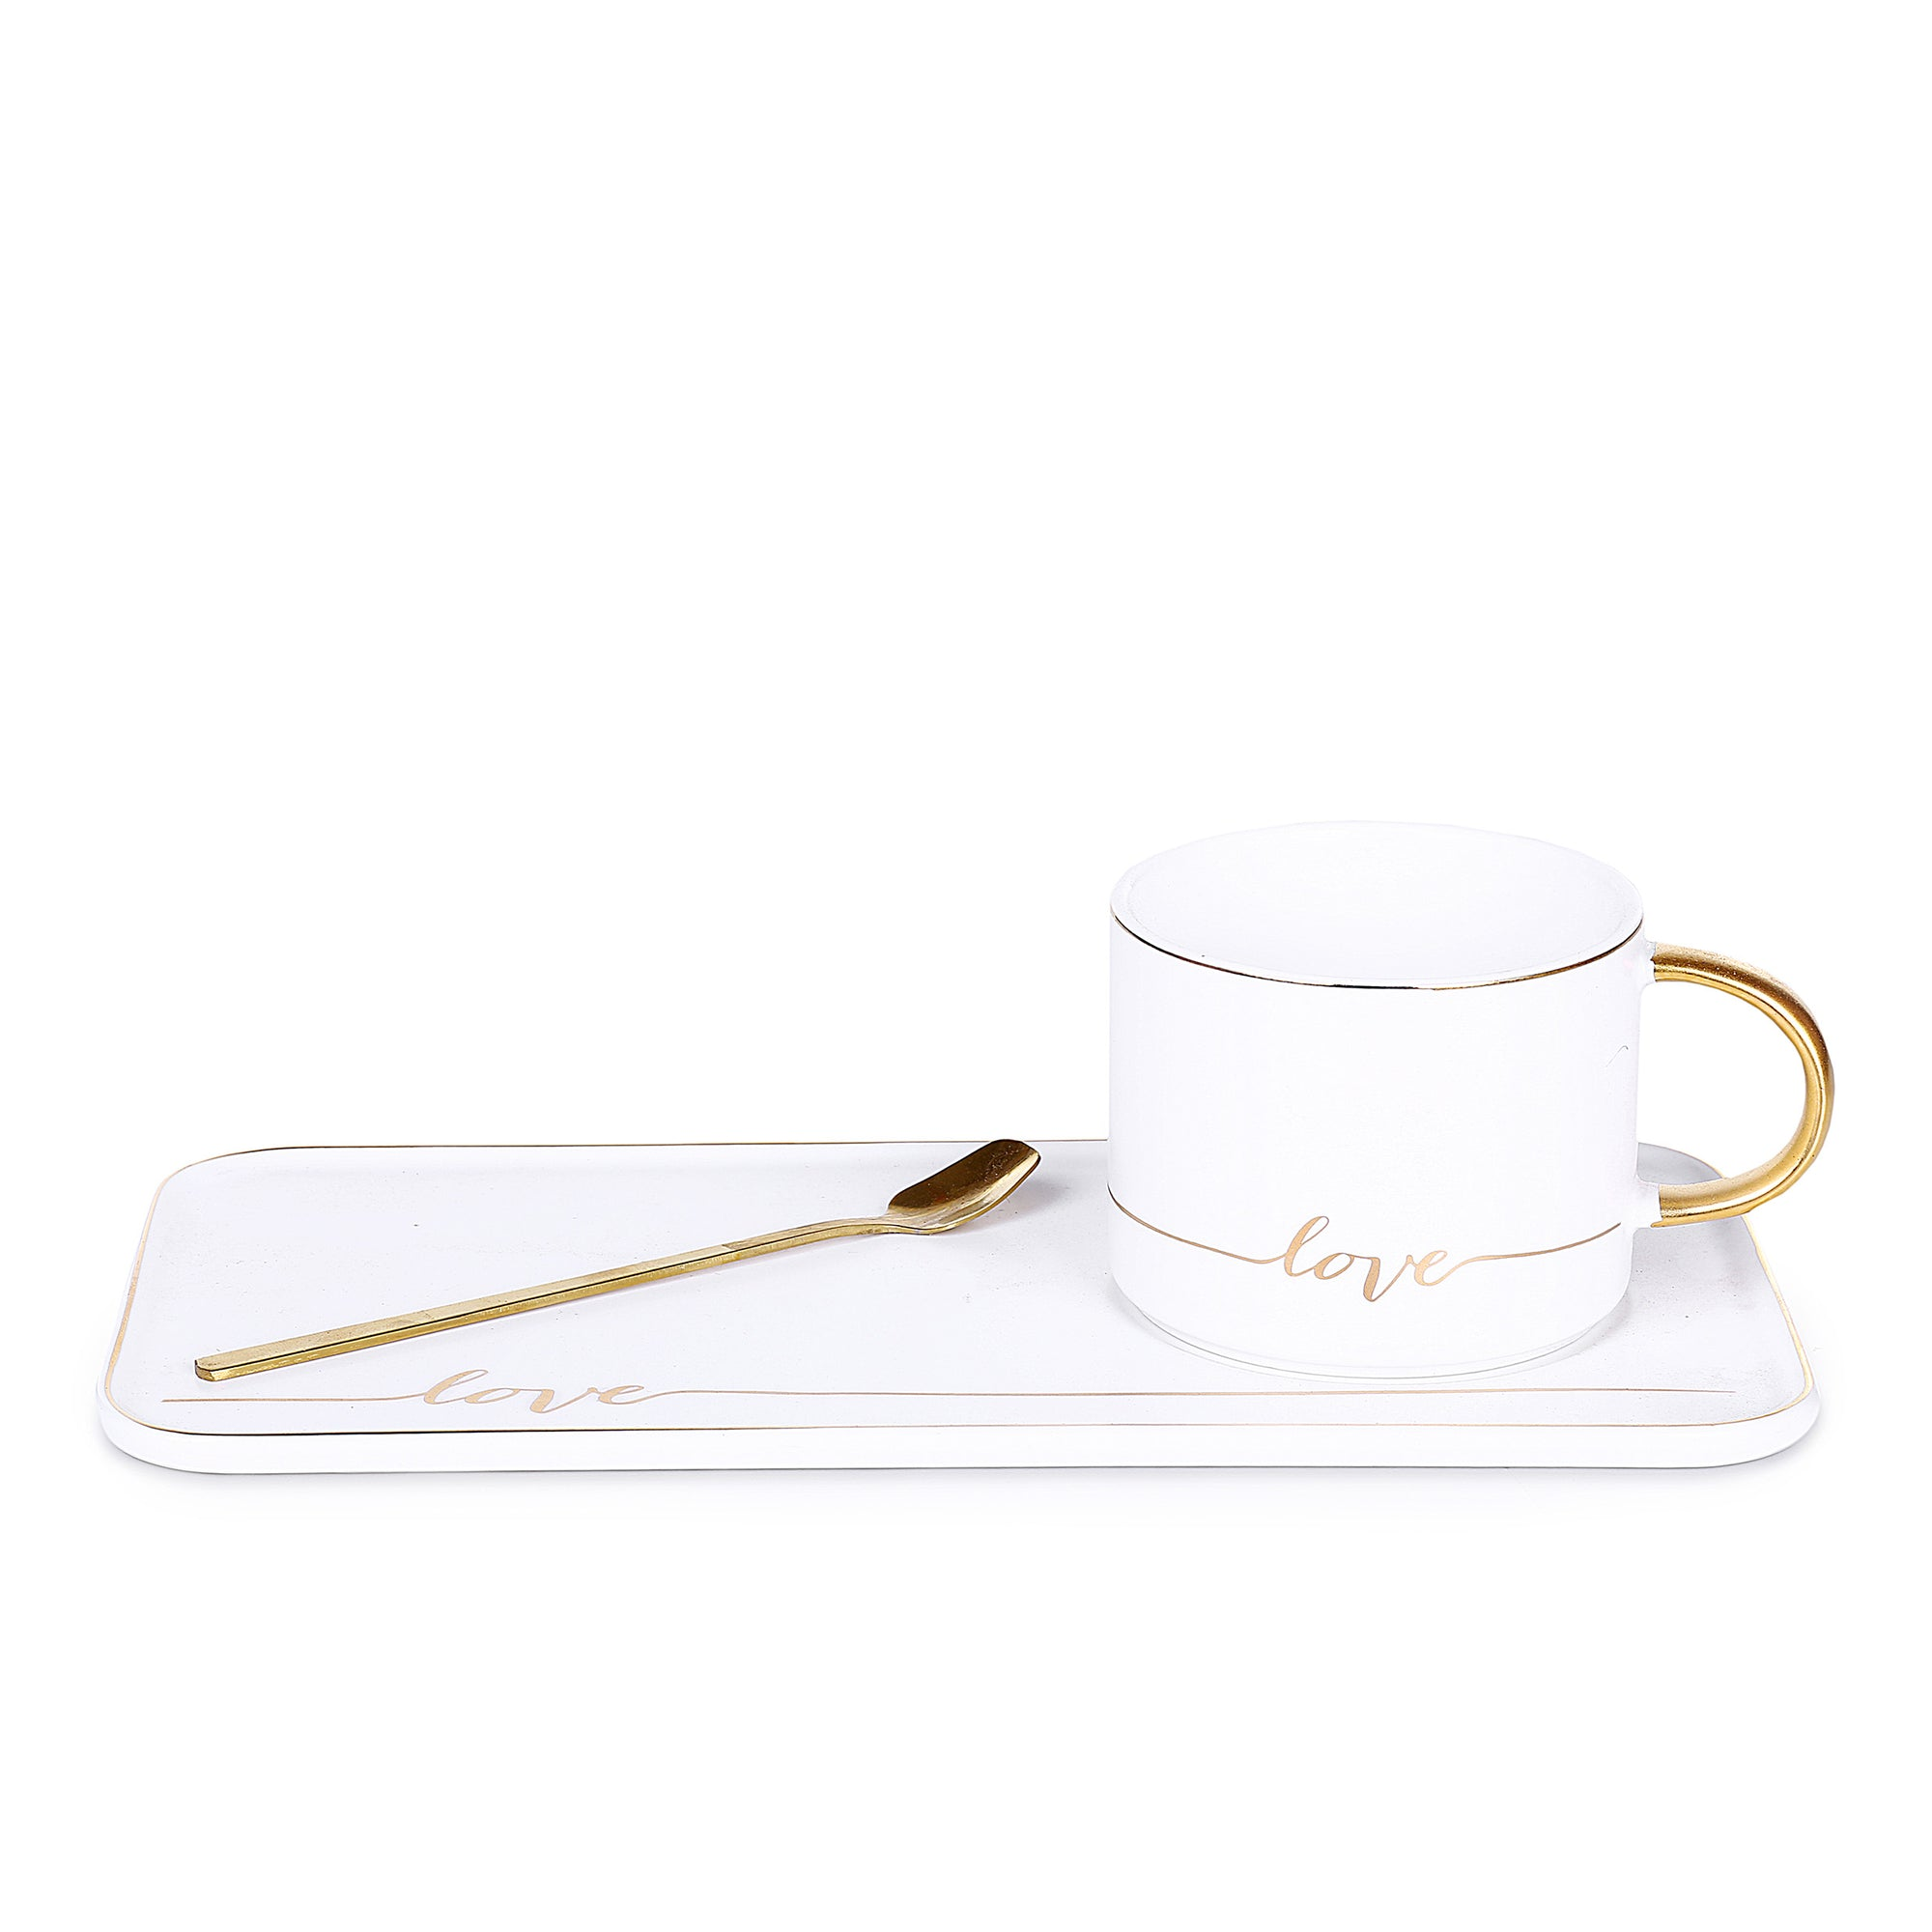 Love White Mug With Tray & Golden Spoon